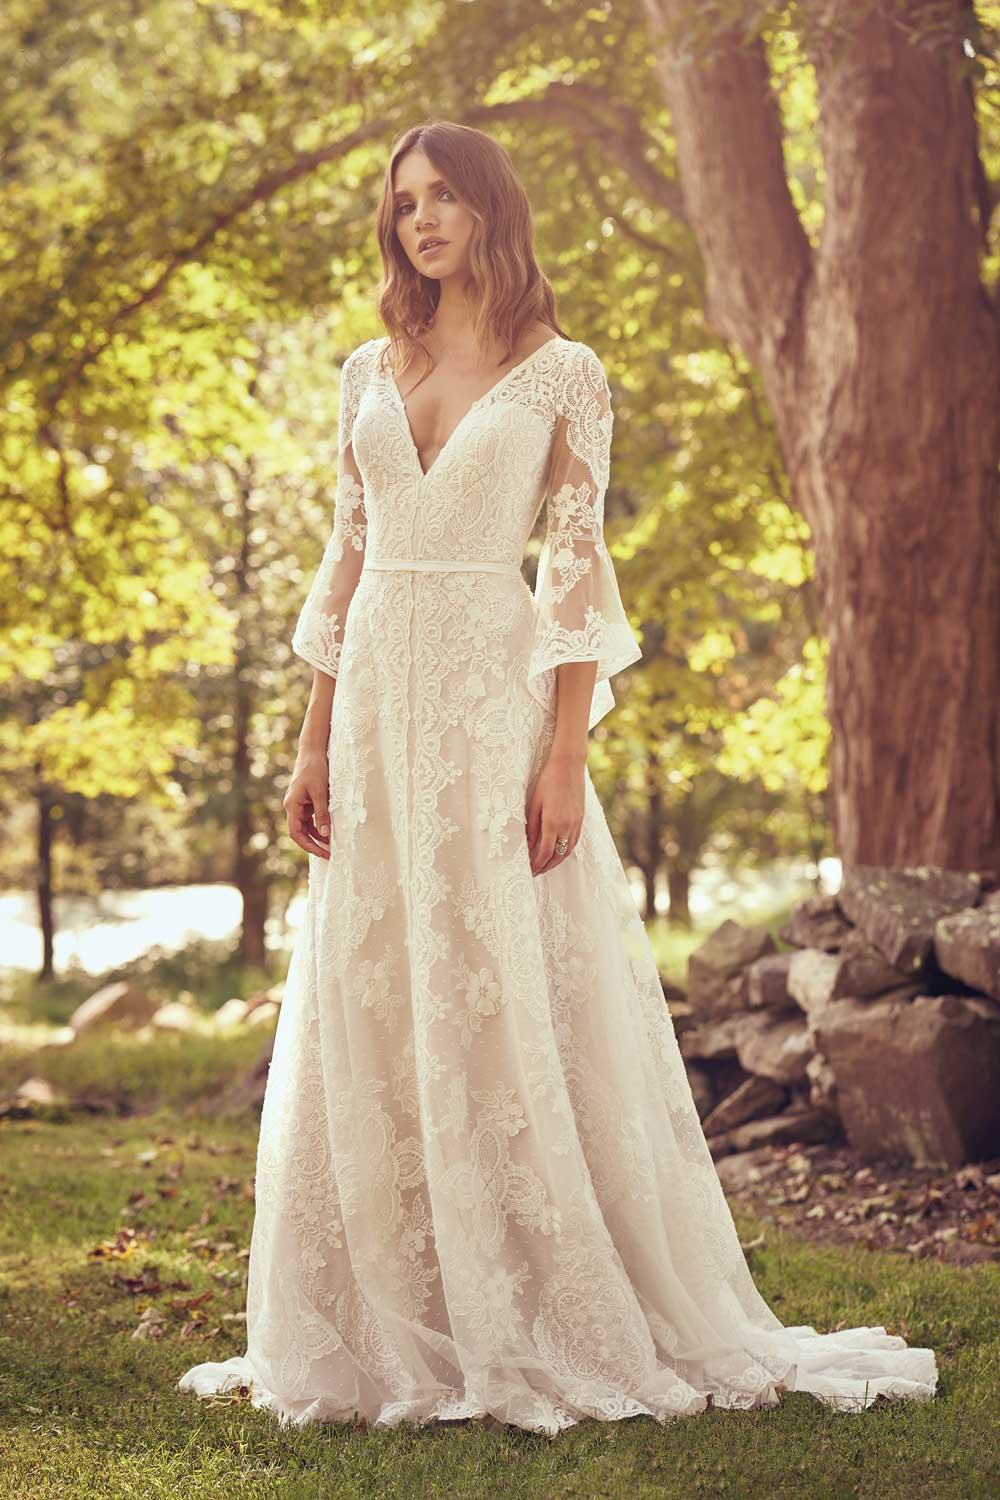 70's Inspired bridal gowns by Lillian West